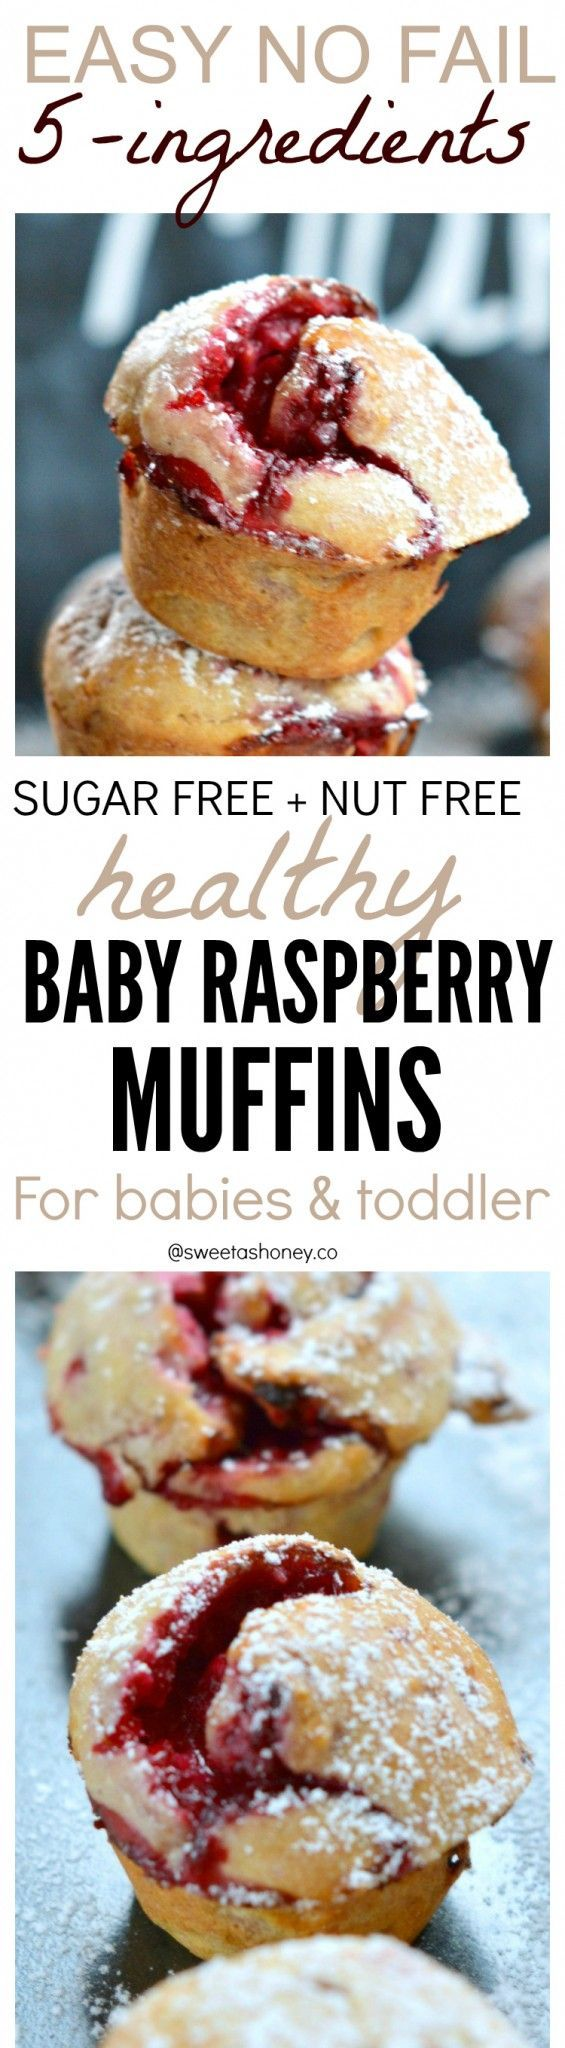 All you need is 5 ingredients to make these healthy Raspberry muffins!